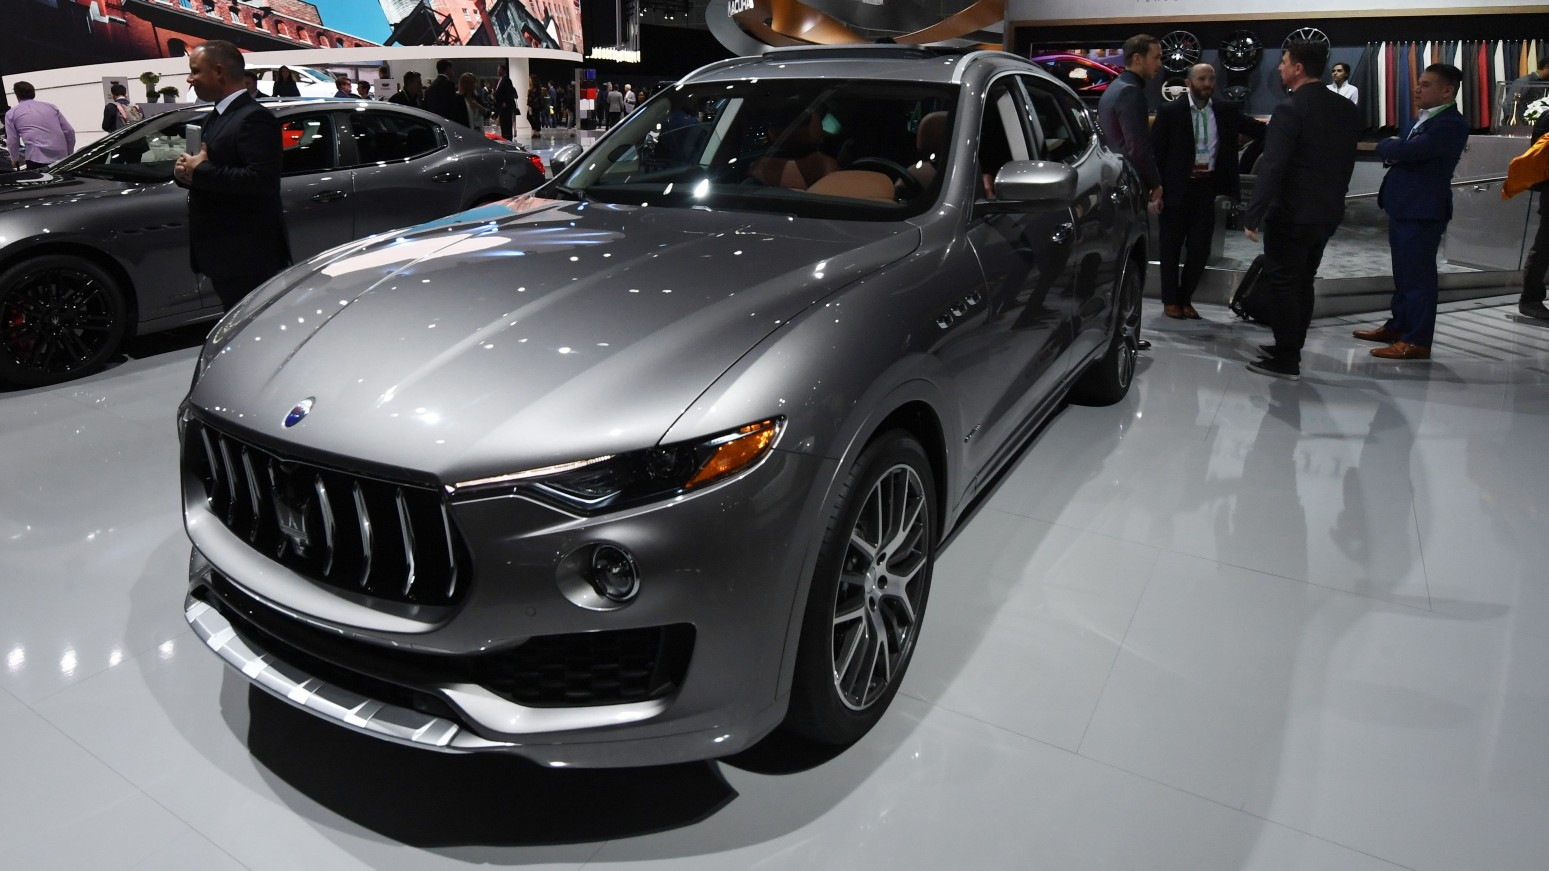 A Maserati SUV — not the one involved in the case, is seen in a file photo from the 2017 L.A. Auto Show in Los Angeles on Nov. 29, 2017. (MARK RALSTON/AFP via Getty Images)